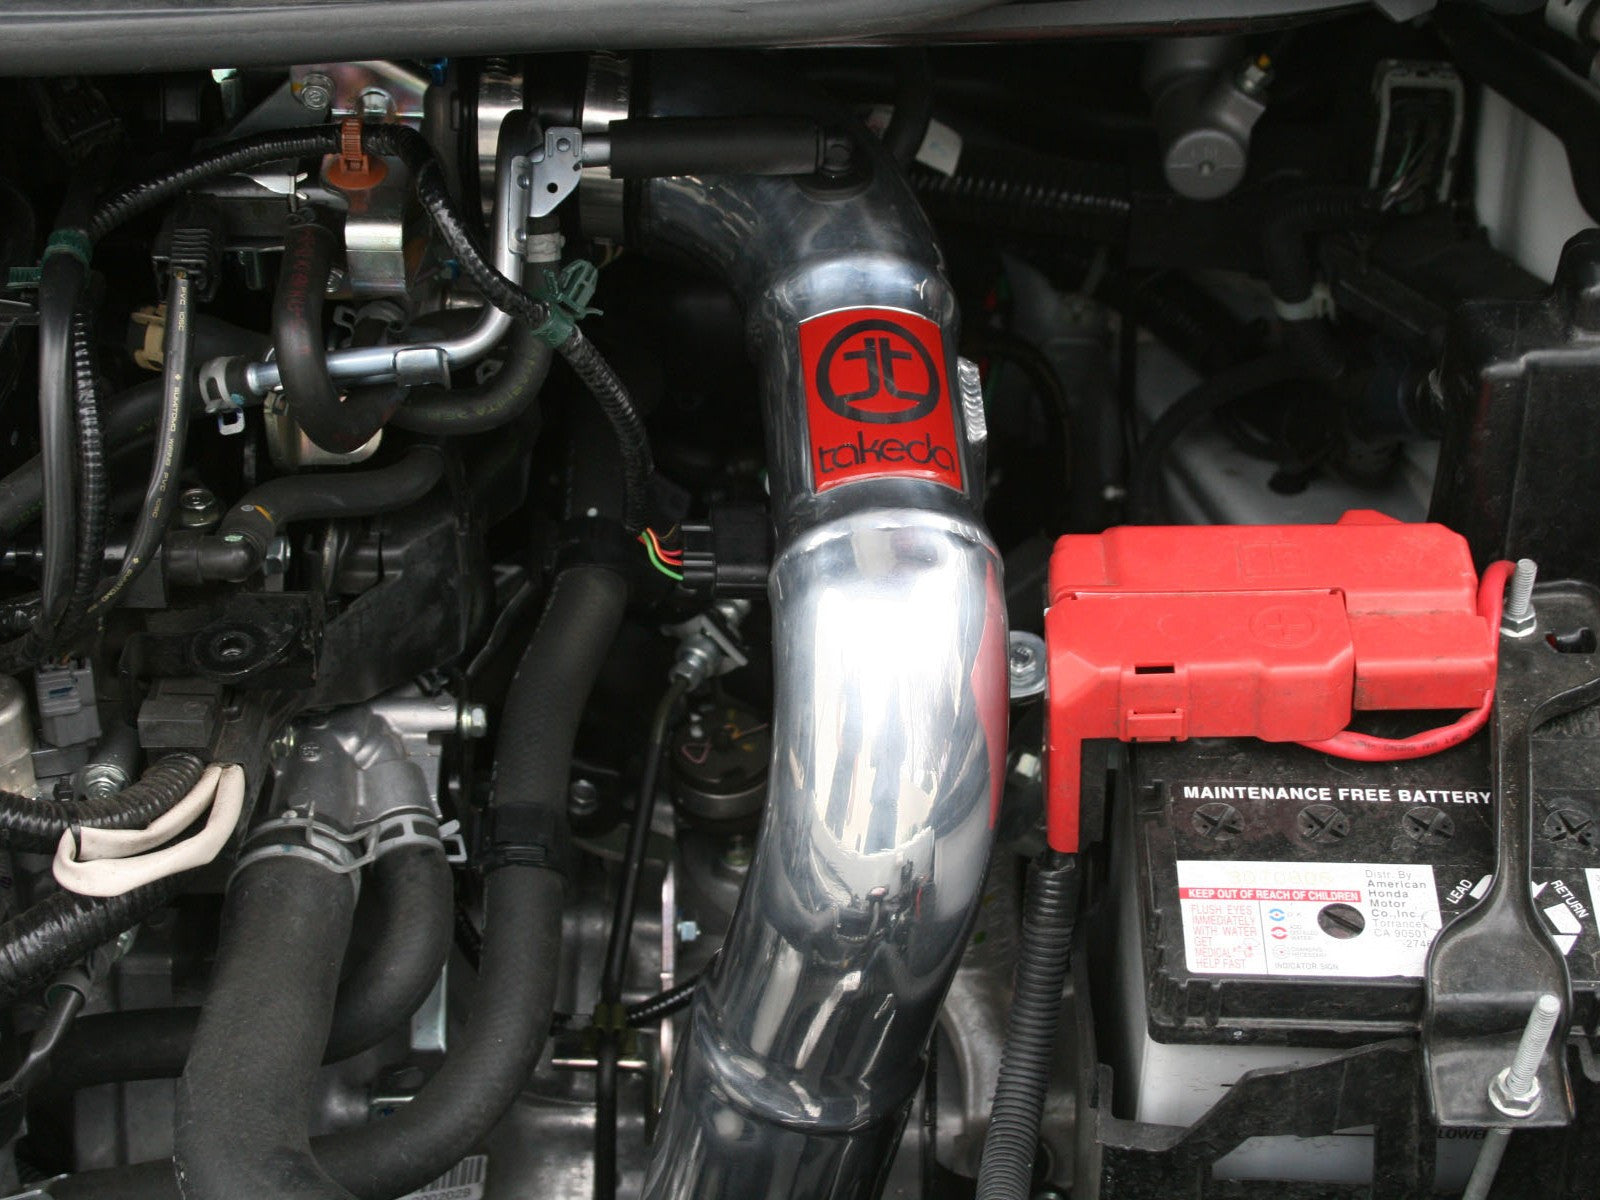 ... Takeda Stage 2 Dry Attack Cold Air Intake 2009-13 Honda Fit 1.5L (